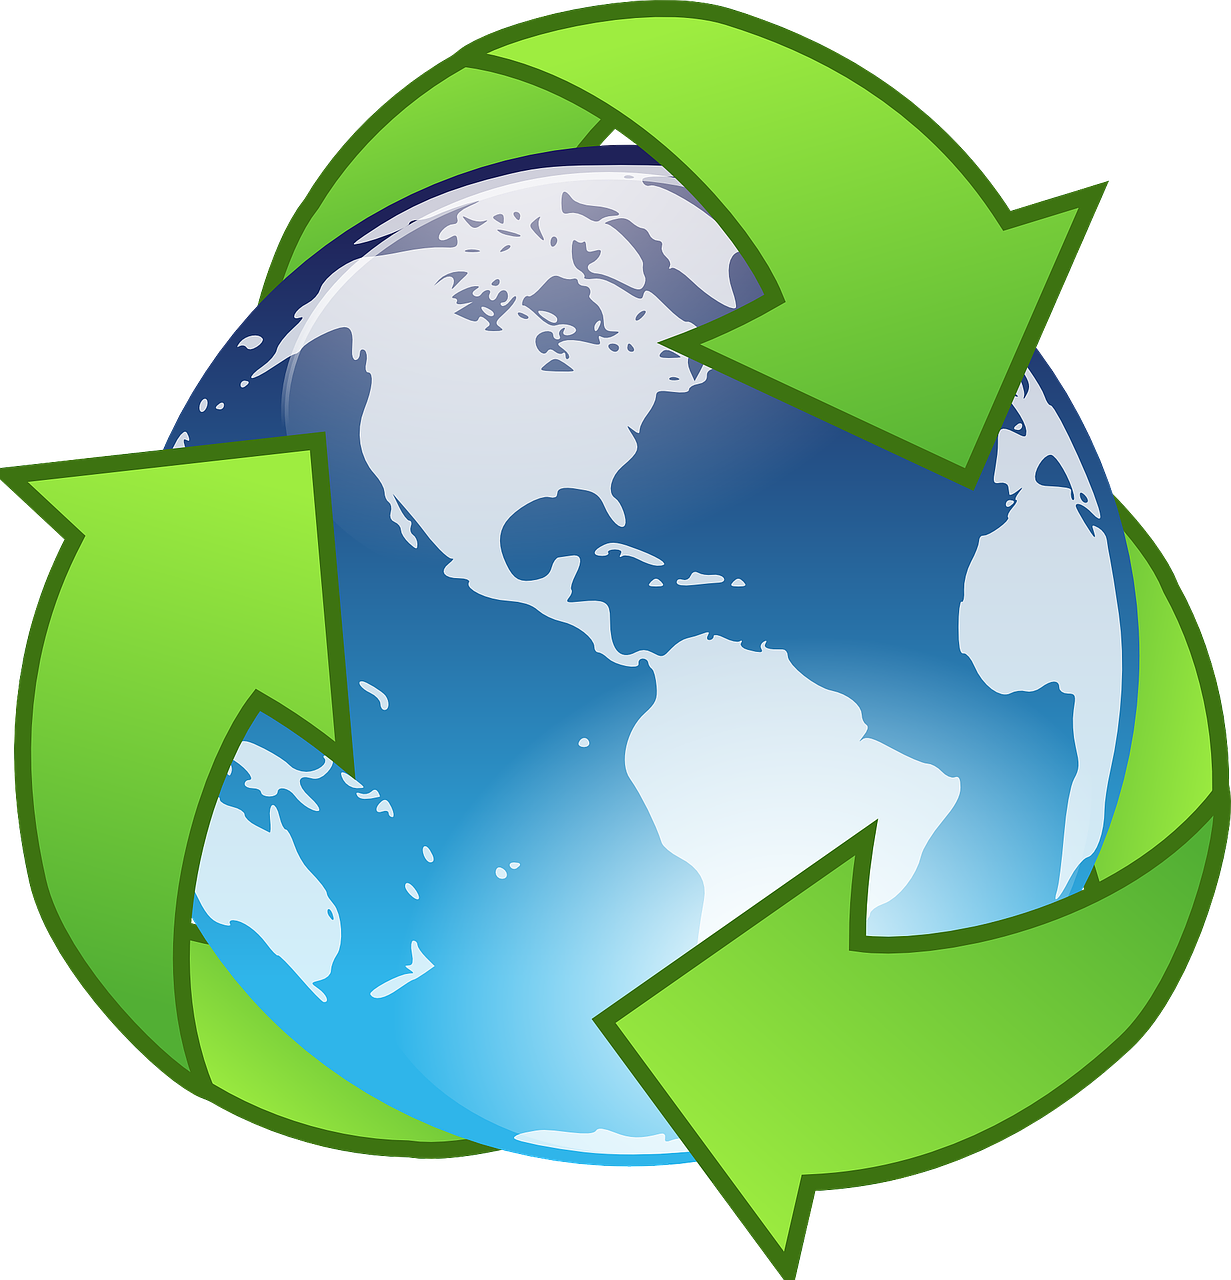 waste-free ontario provincial strategy circular economy world globe earth